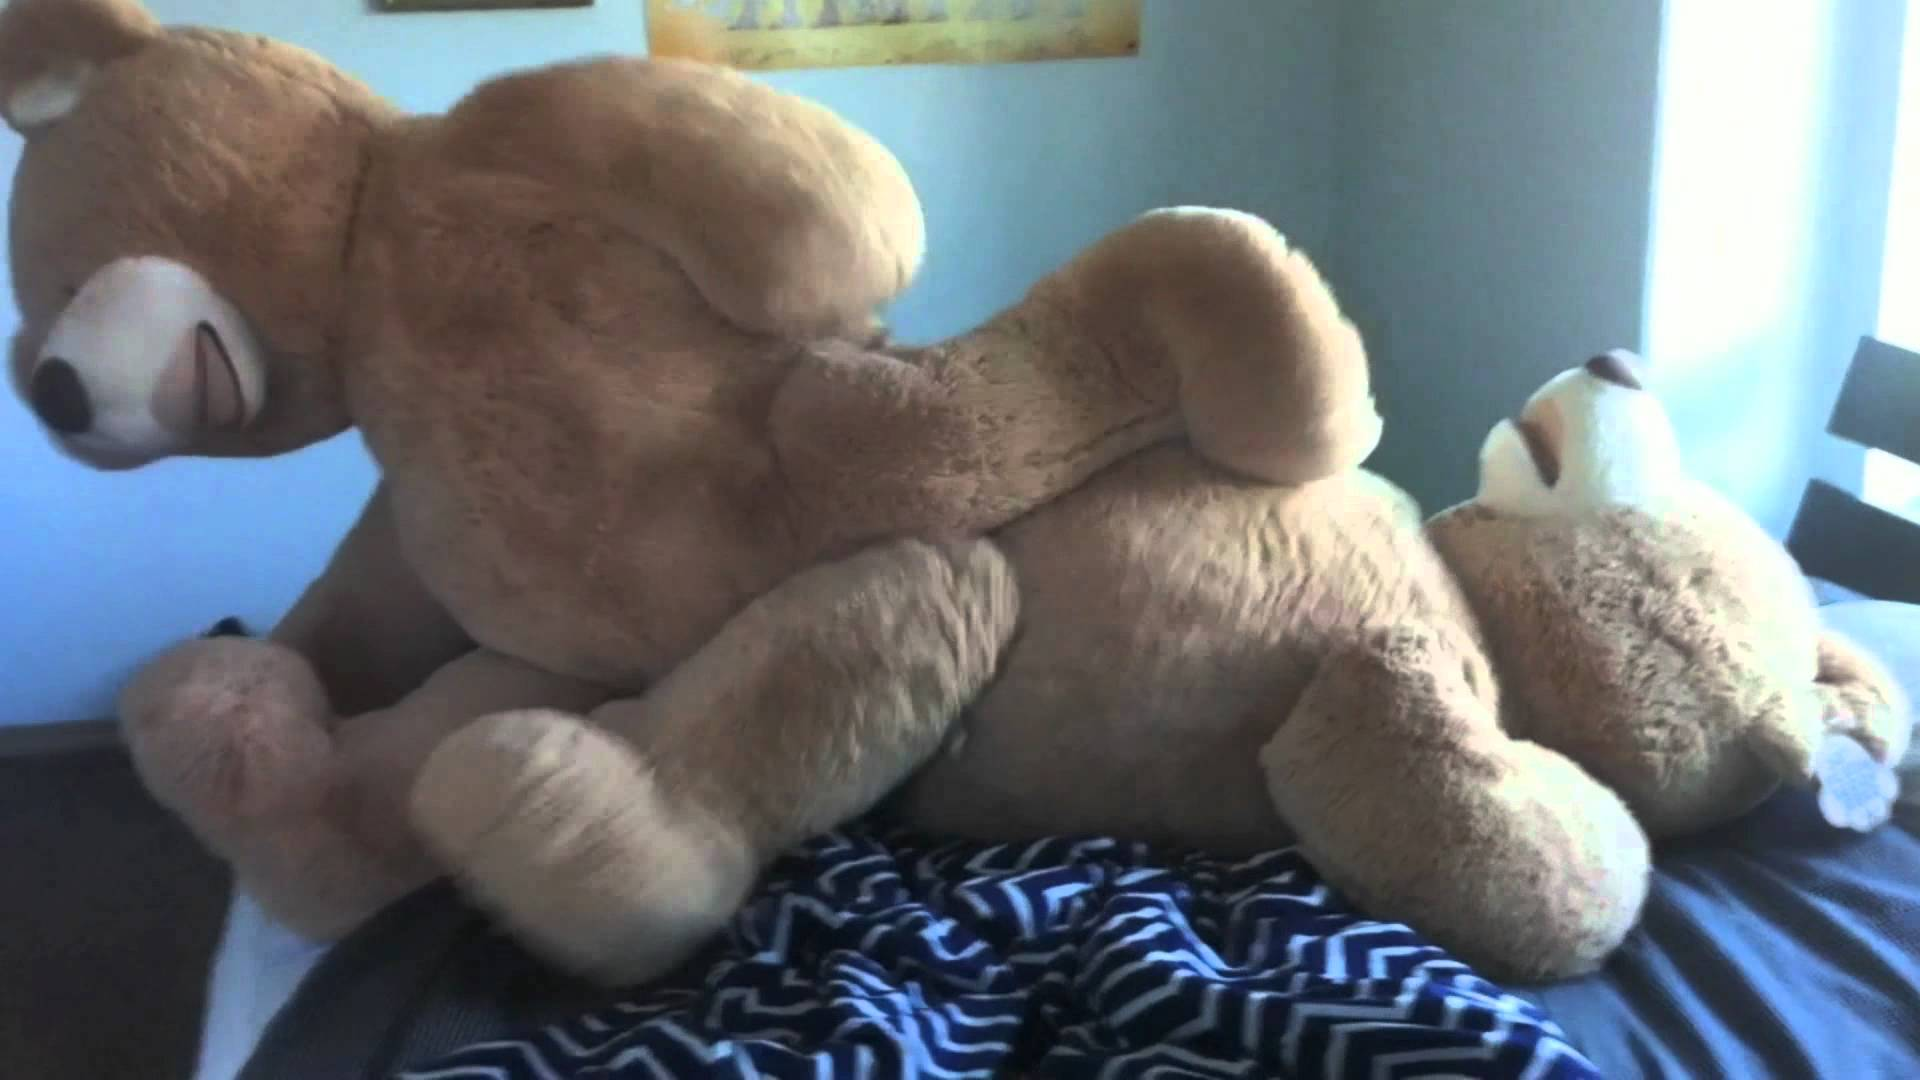 from Desmond sex nude with teddy bear